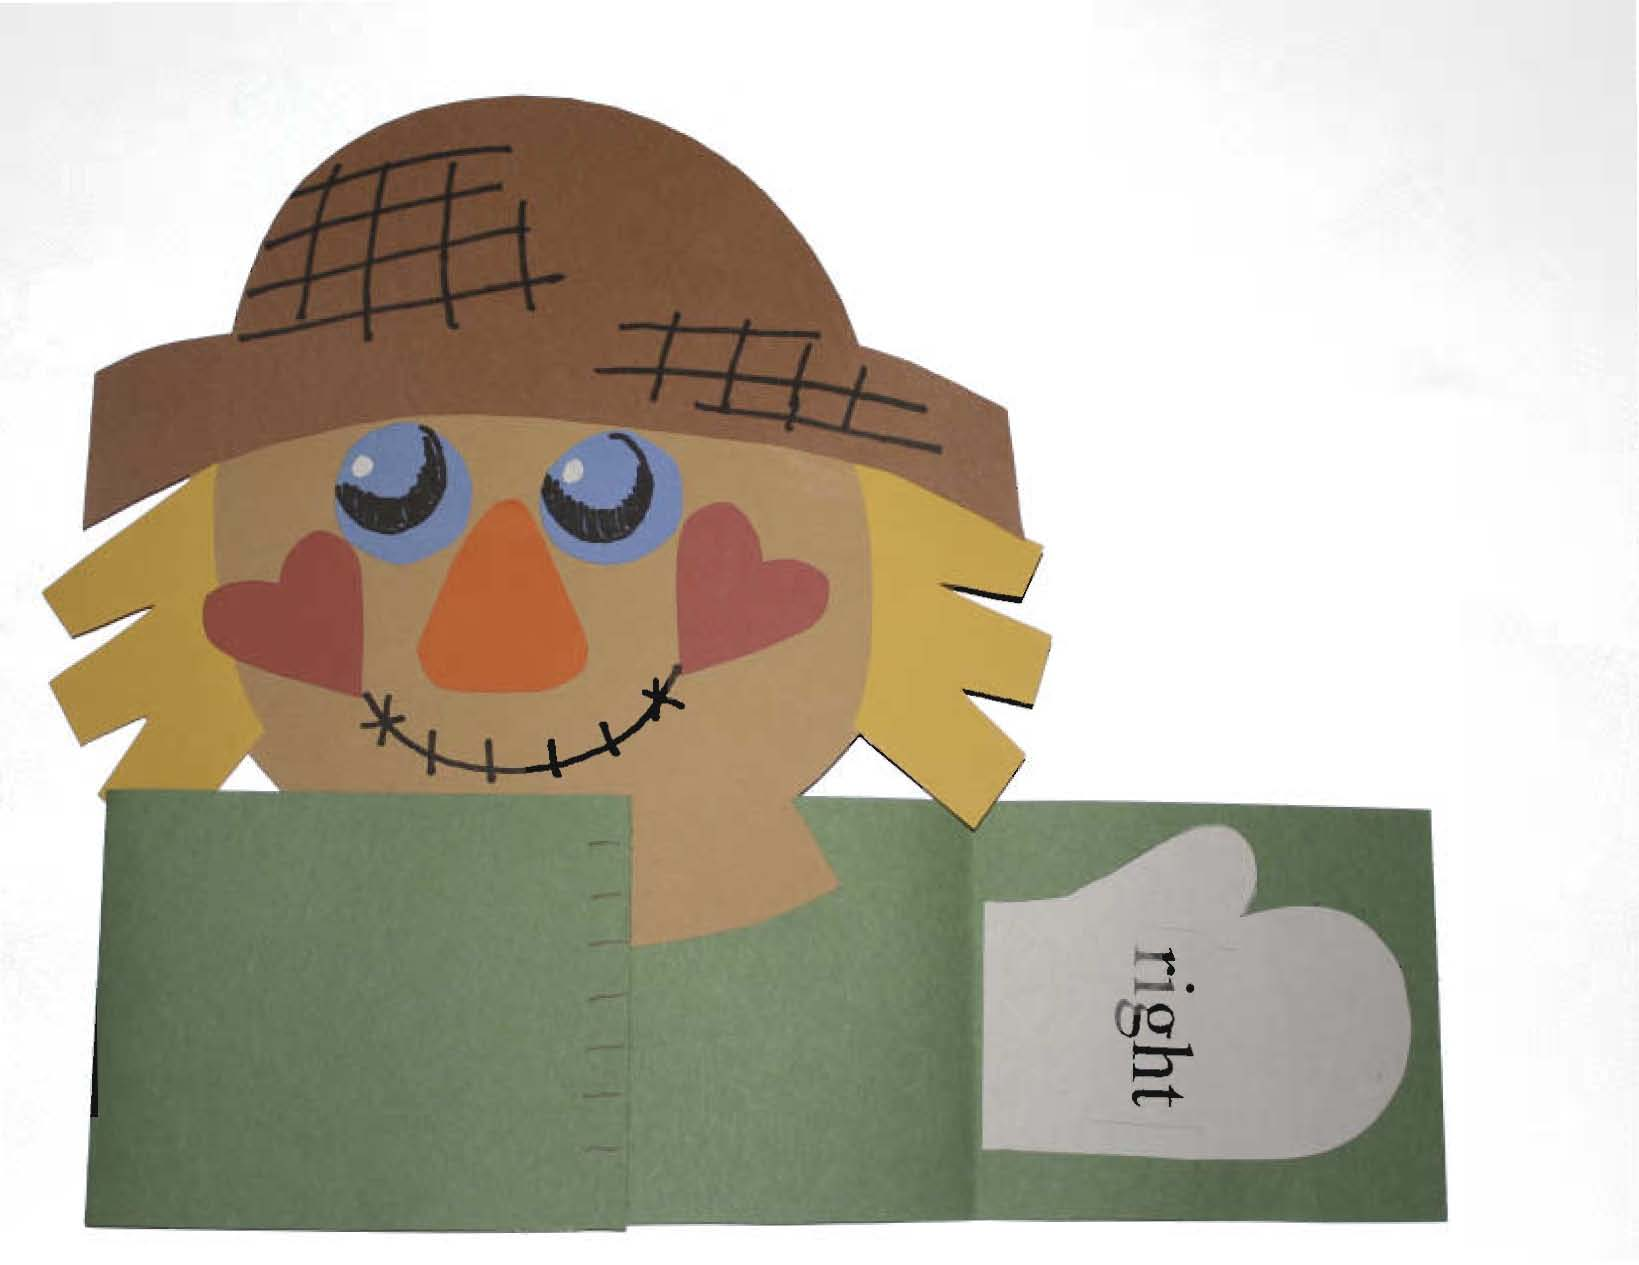 scarecrow activities, scarecrow lessons, skip counting activities, shape activities, fall bulletin board ideas, scarecrow bulletin boards, patterning, paper chains, scarecrow art, scarecrow crafts, scarecrow 10 frames, scarecrow bulletin boards, scarecrow writing prompts, writing prompts for November, scarecrow math, scarecrow centers, common core scarecrows